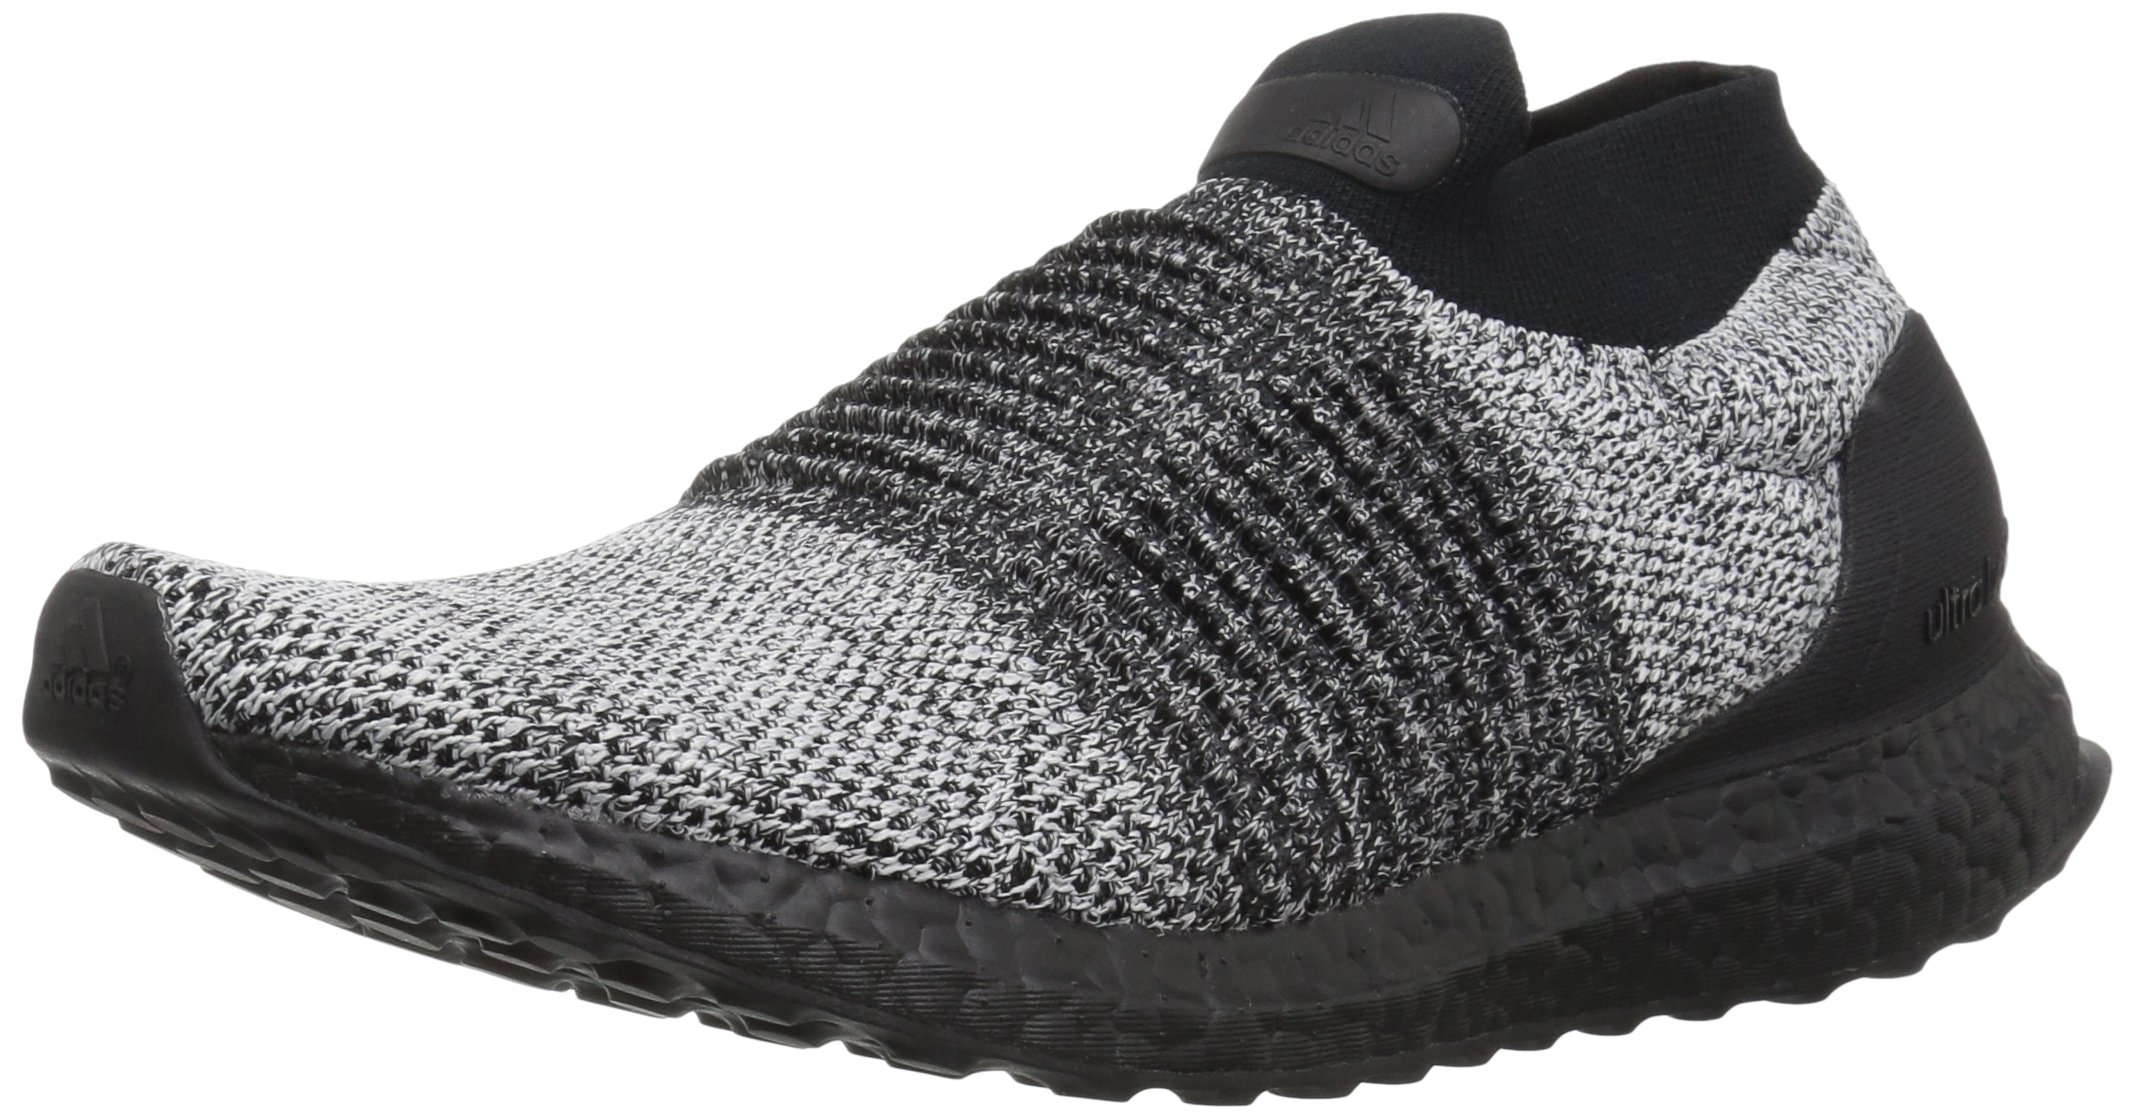 2623f33cf0744 Adidas Ultra Boost 2.0 Top Deals   Lowest Price